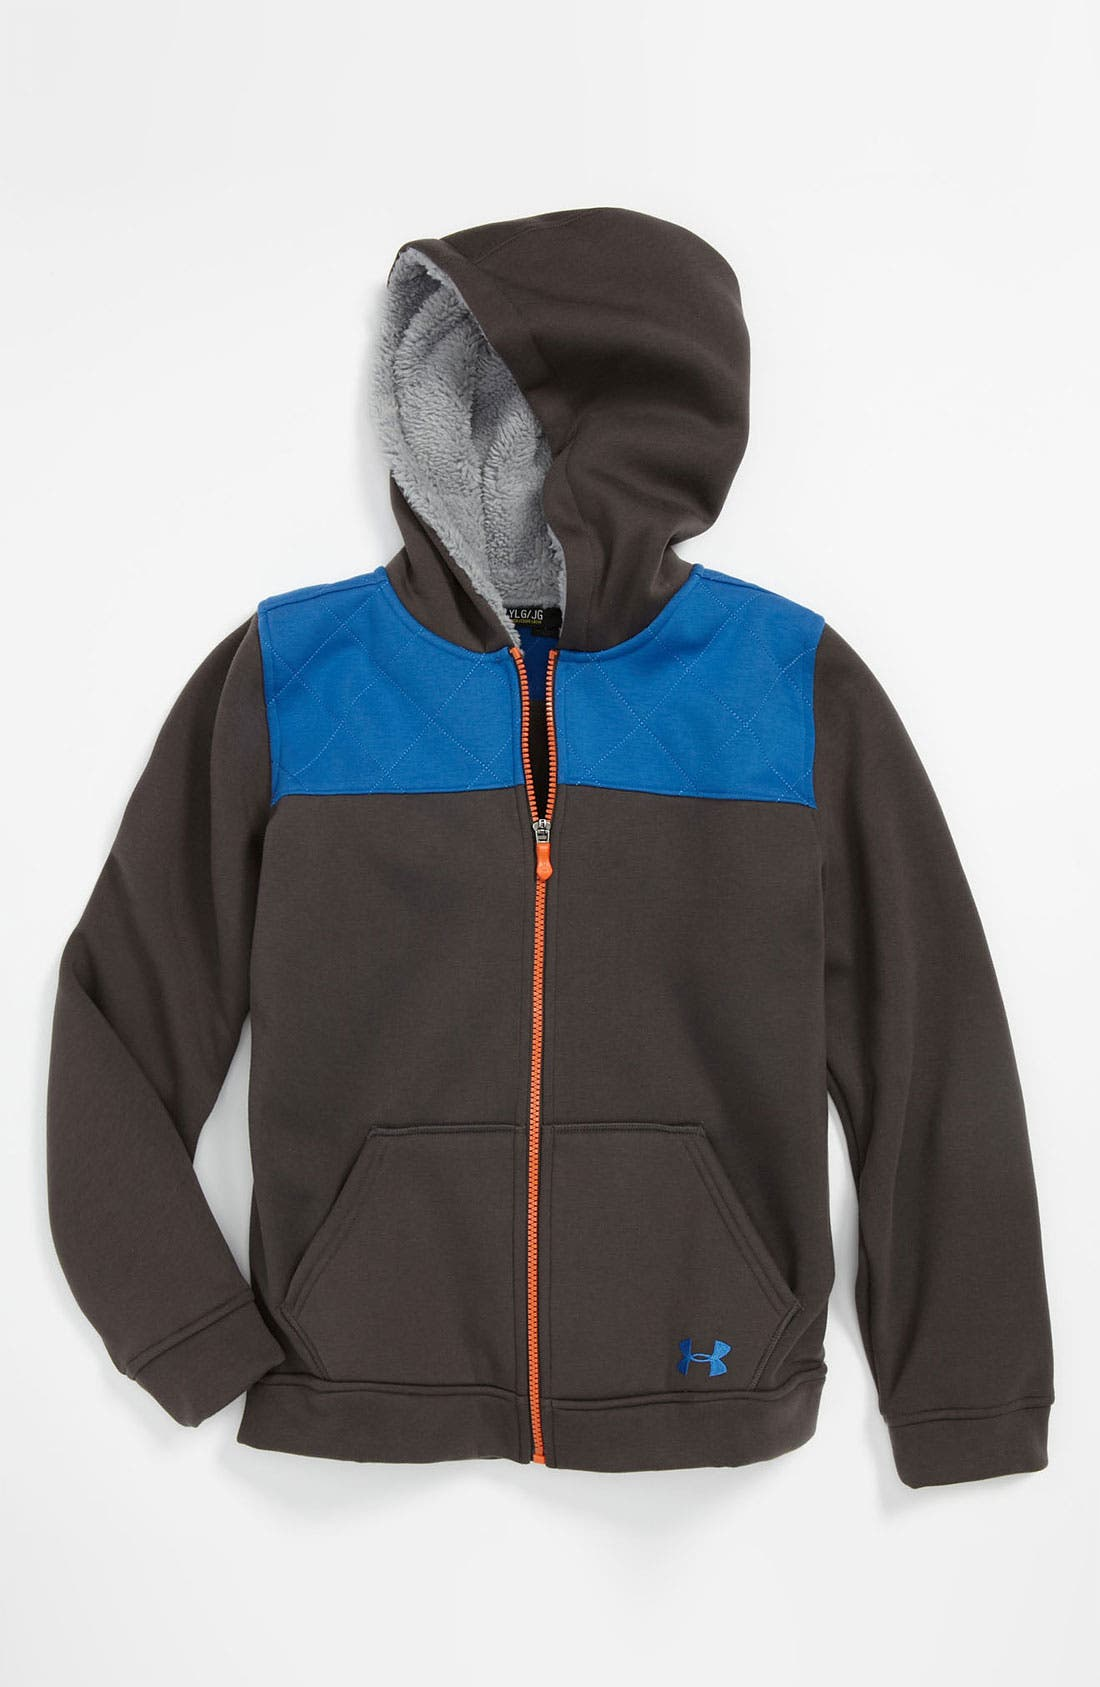 Alternate Image 1 Selected - Under Armour 'Super Warm FZ' Hoodie (Big Boys)